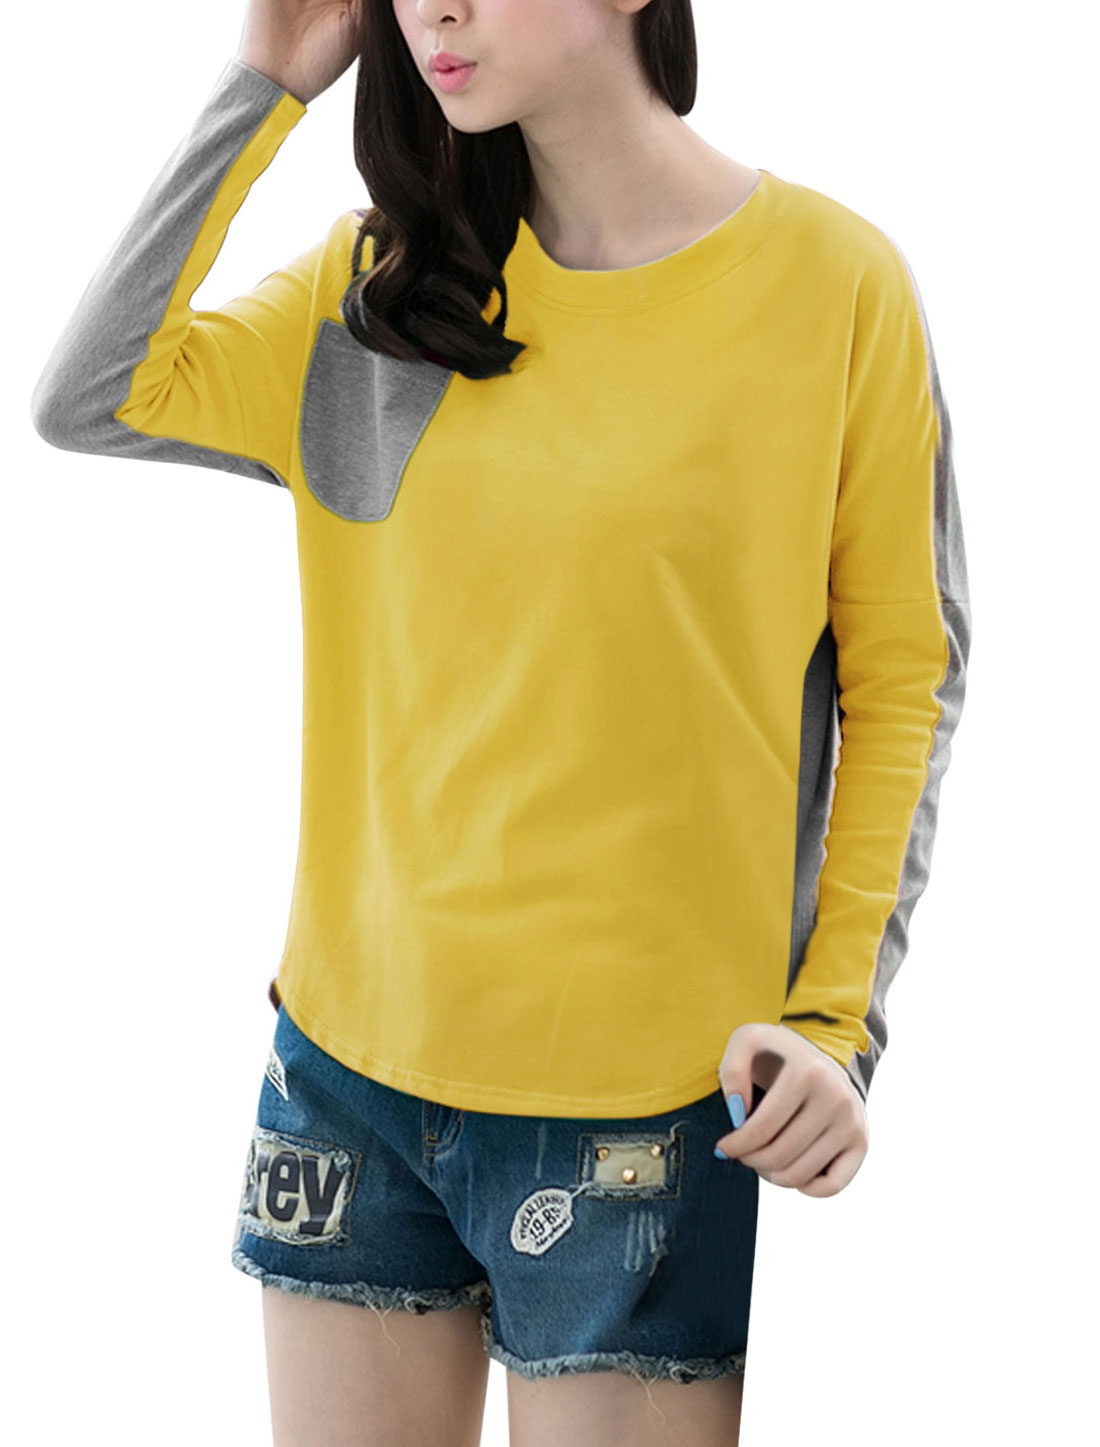 Lady Crew Neck Batwing Sleeve Contrast Color T-Shirt Yellow Gray S